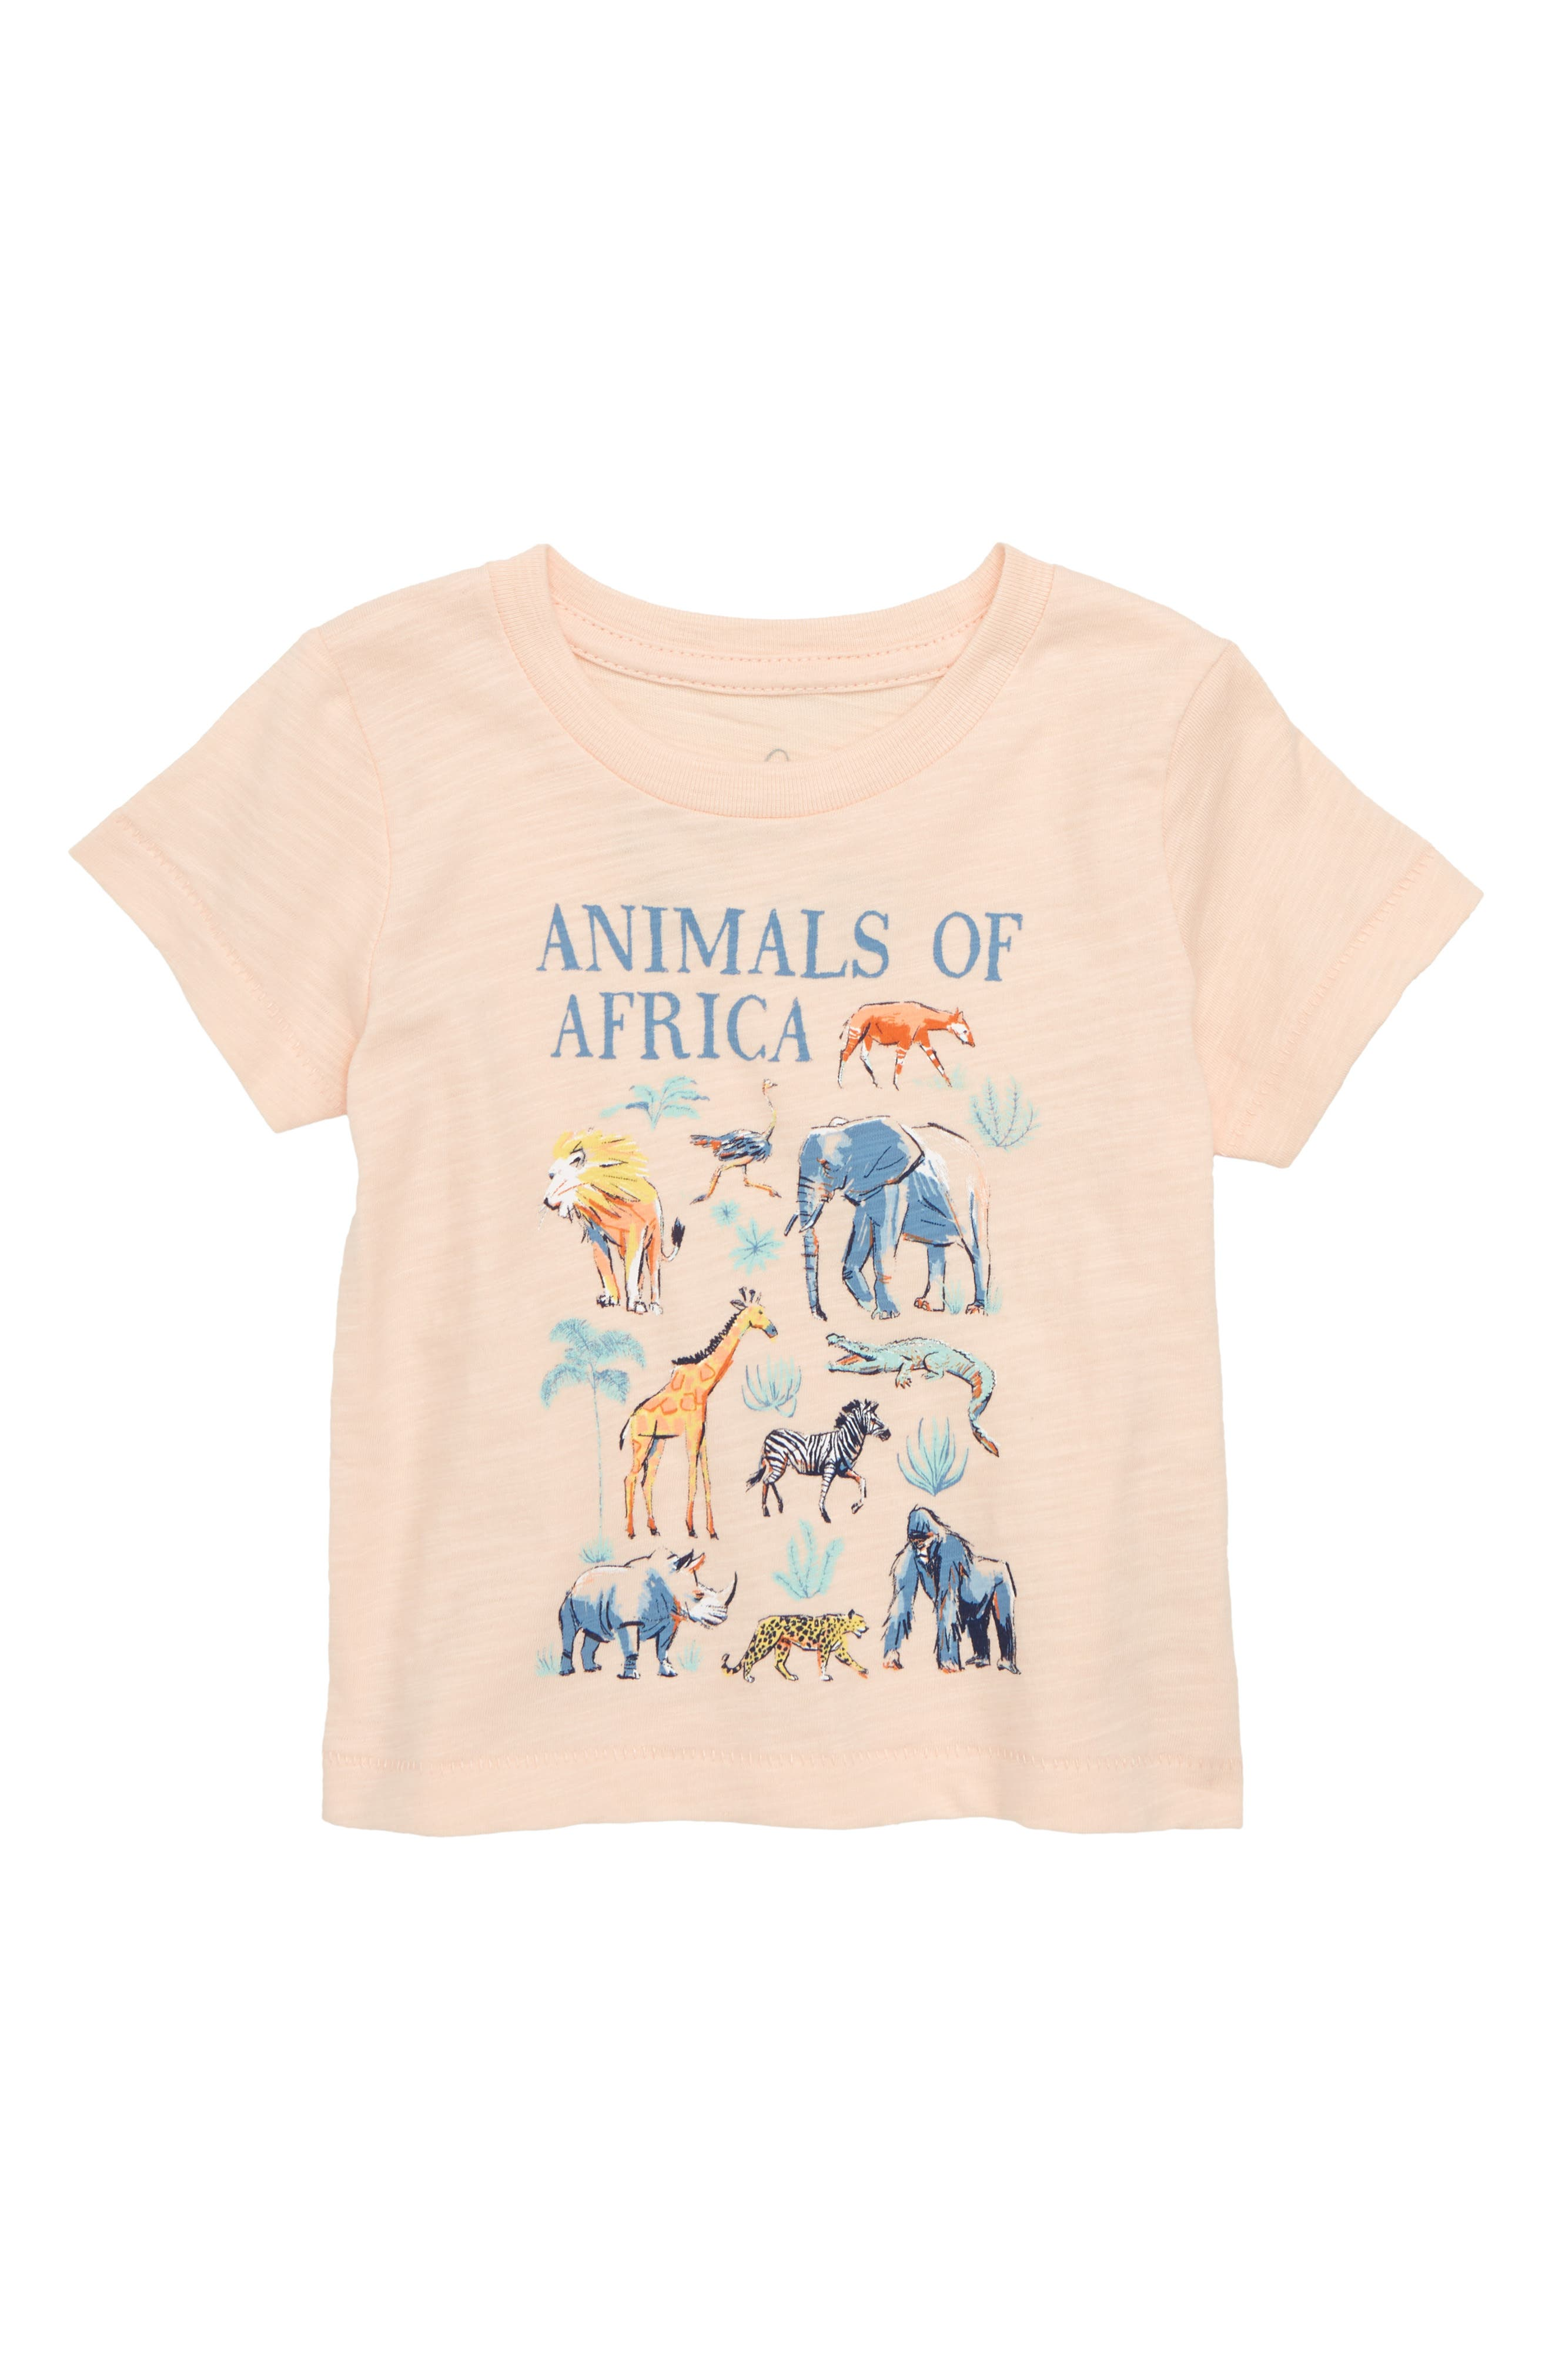 Animals of Africa Graphic Tee,                             Main thumbnail 1, color,                             Peach